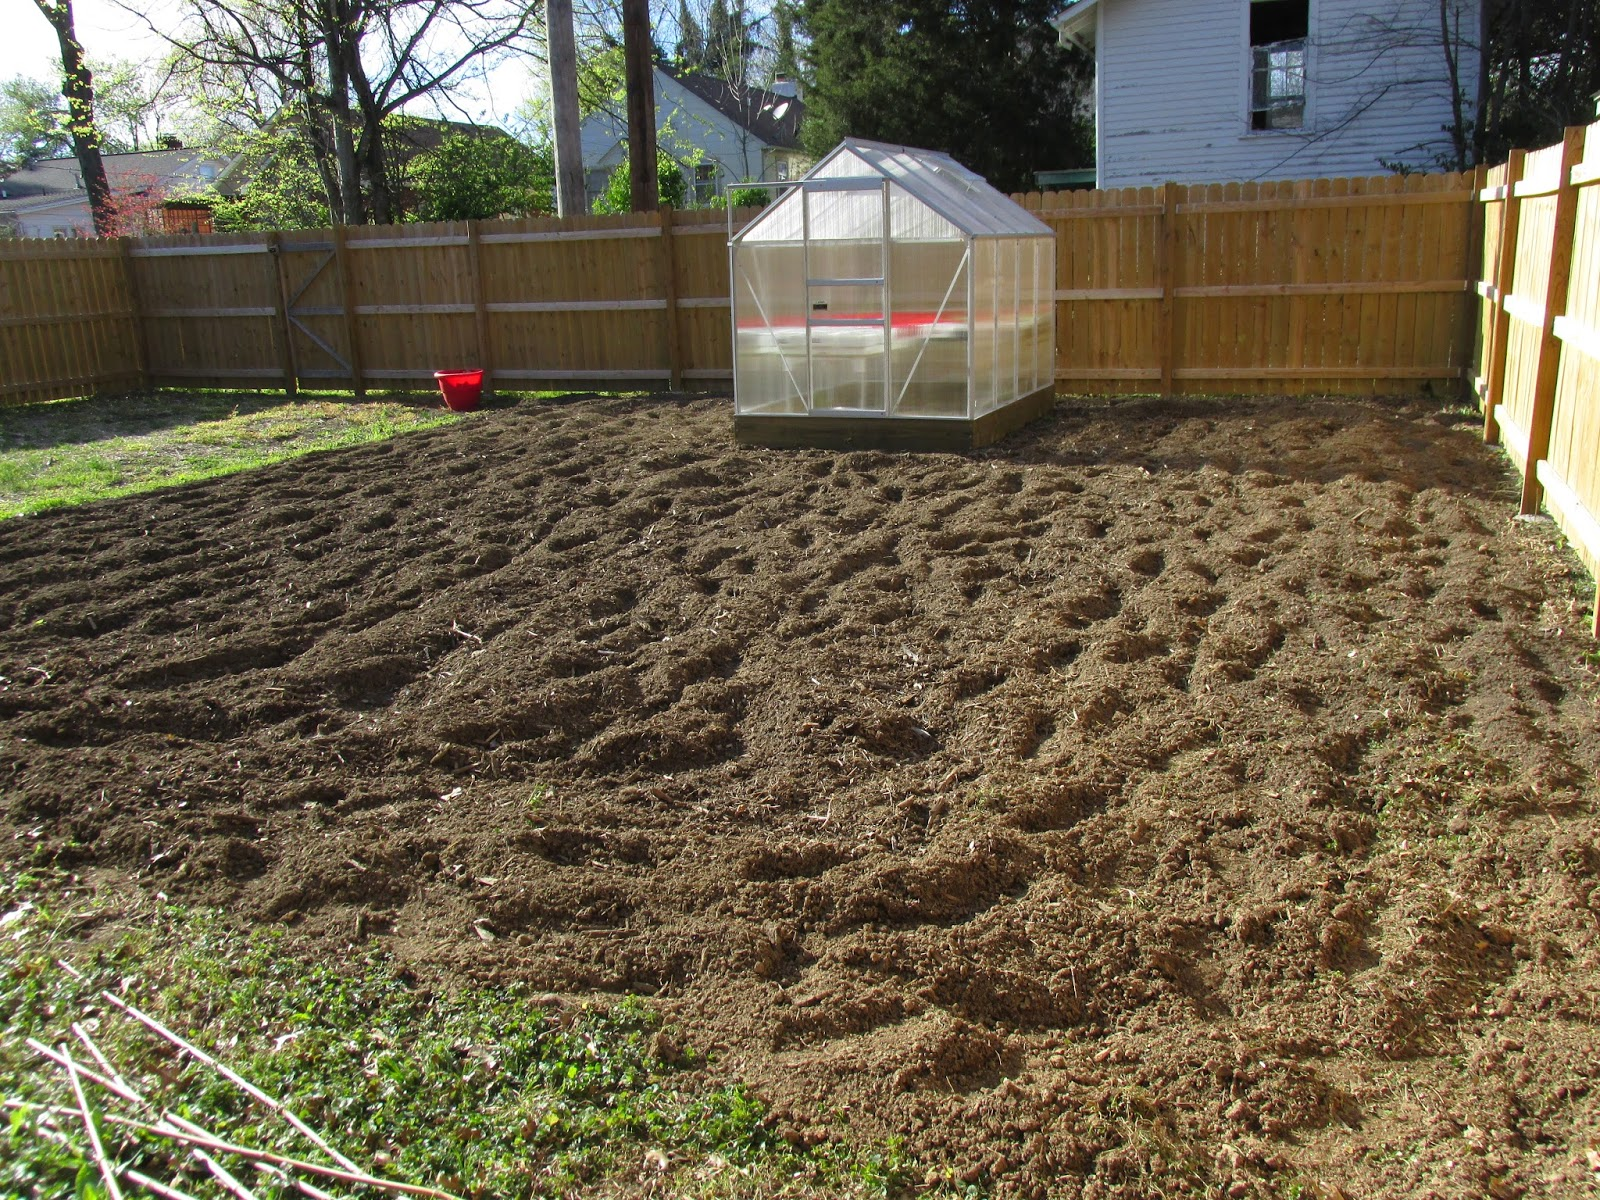 Kentucky Fried Garden: Garden Tilled and a Greenhouse